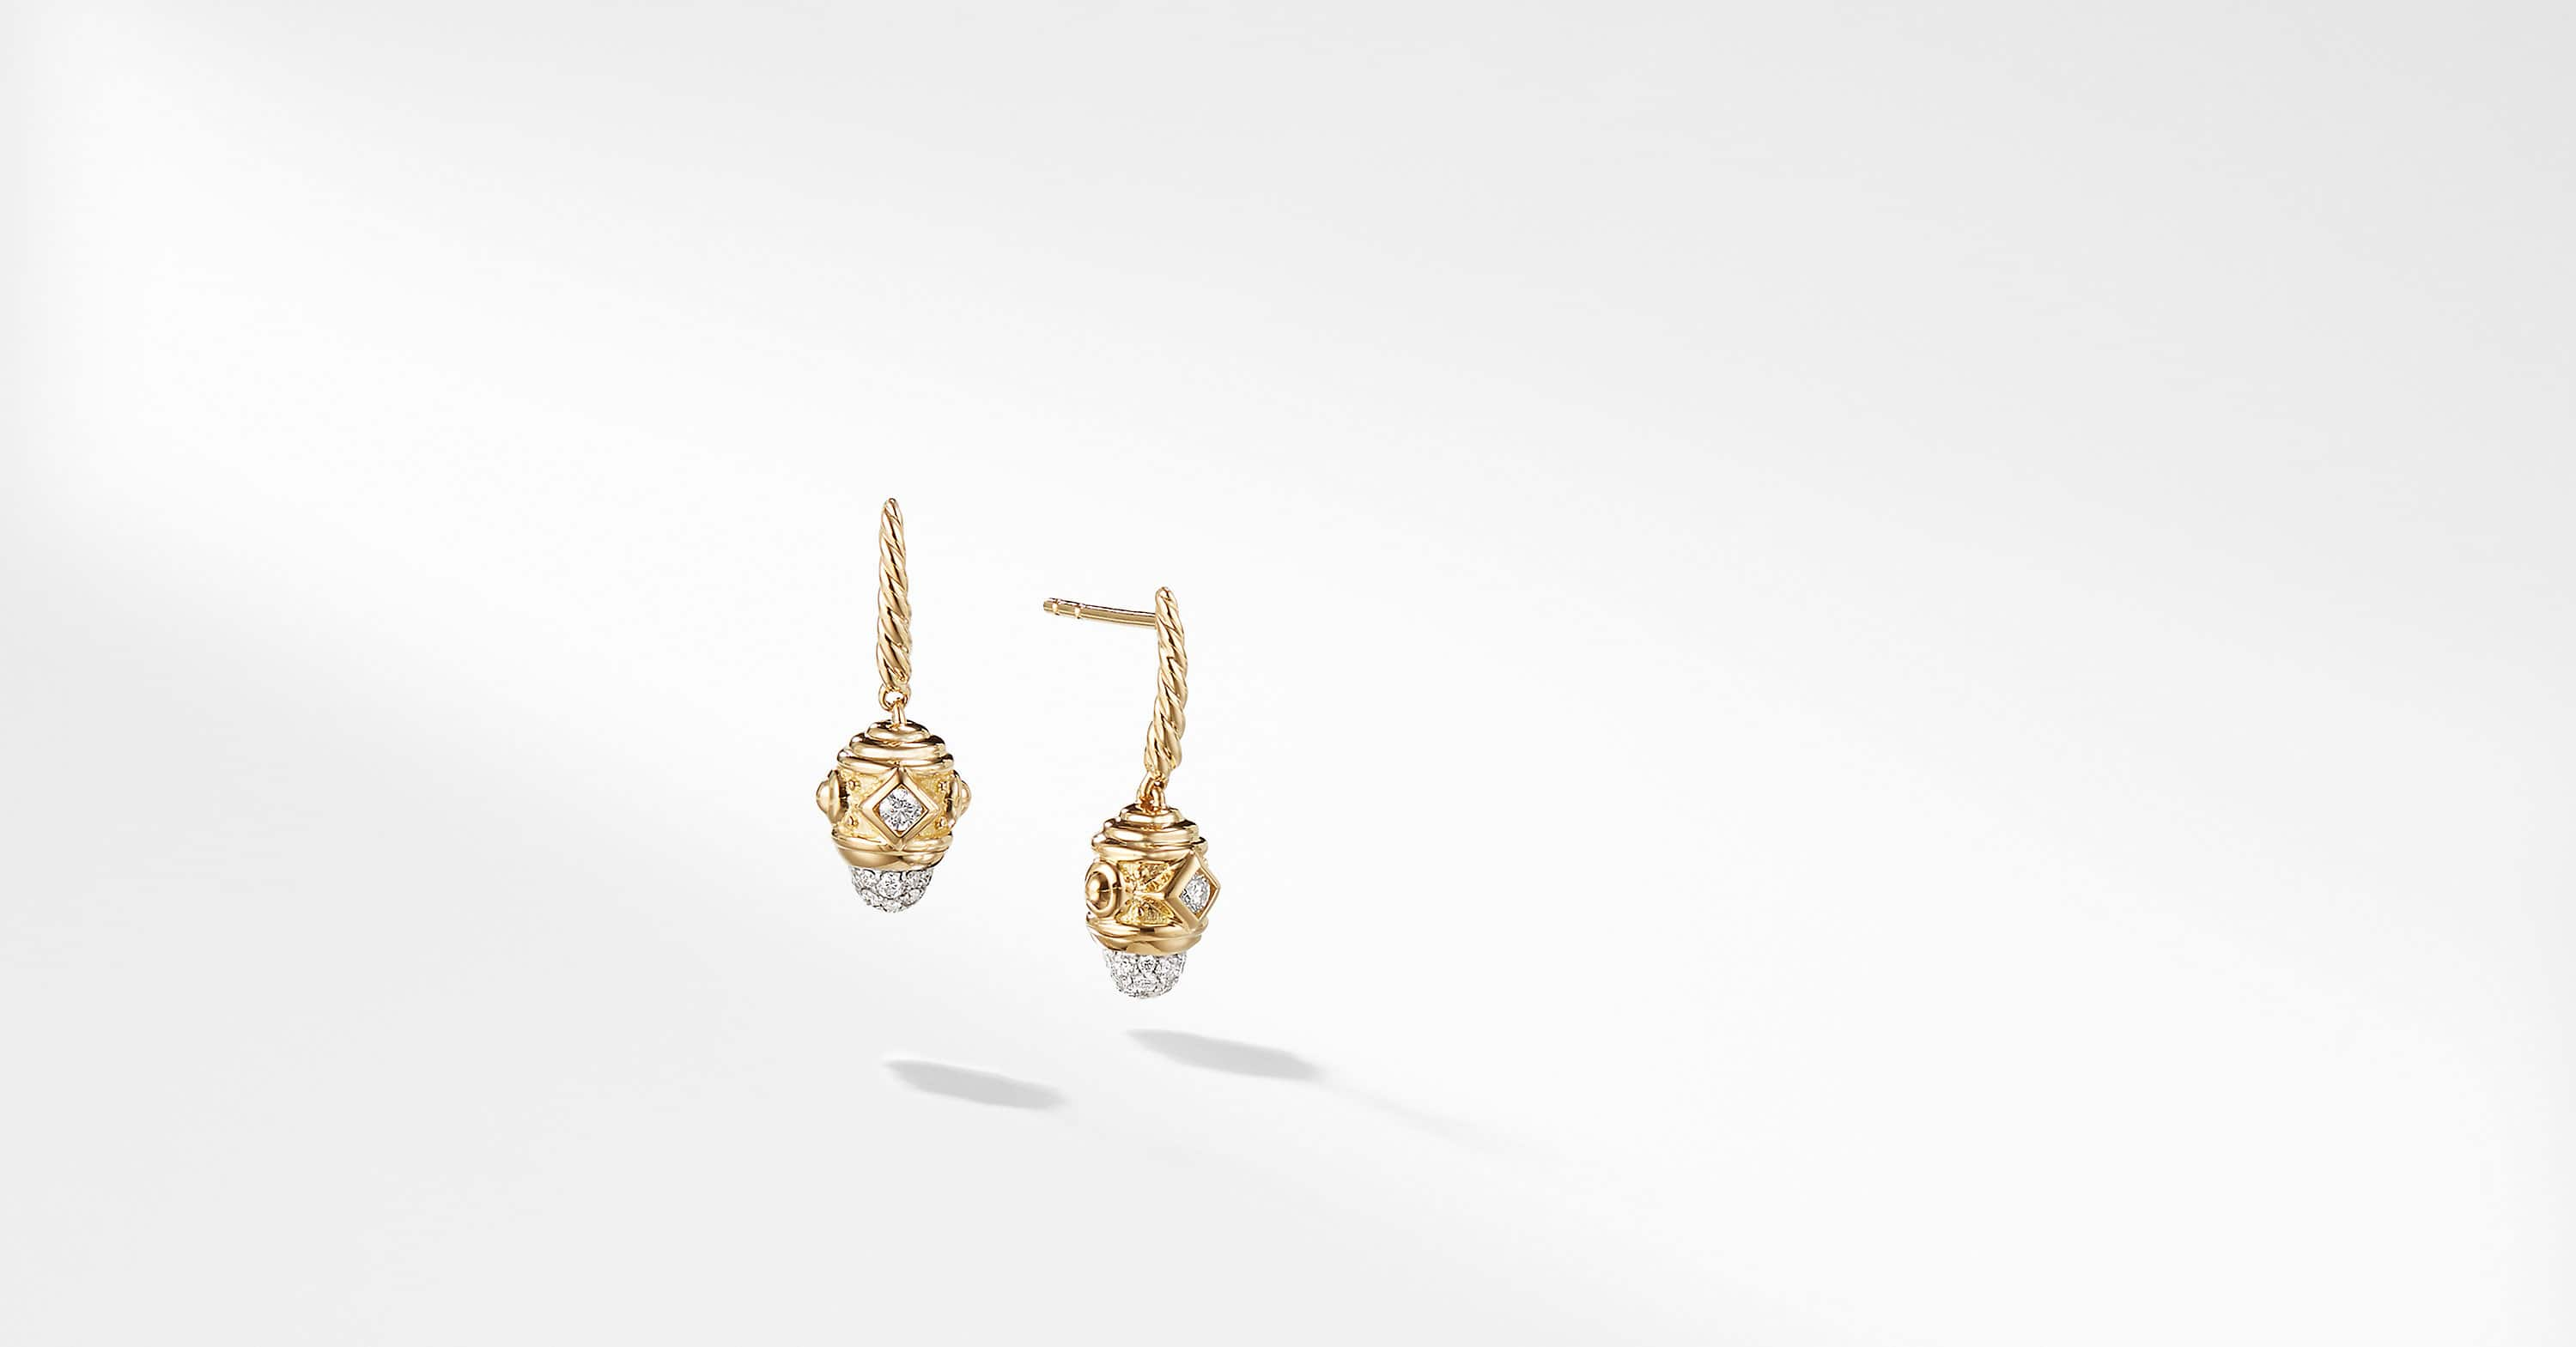 Renaissance Drop Earrings with Diamonds in 18K Gold